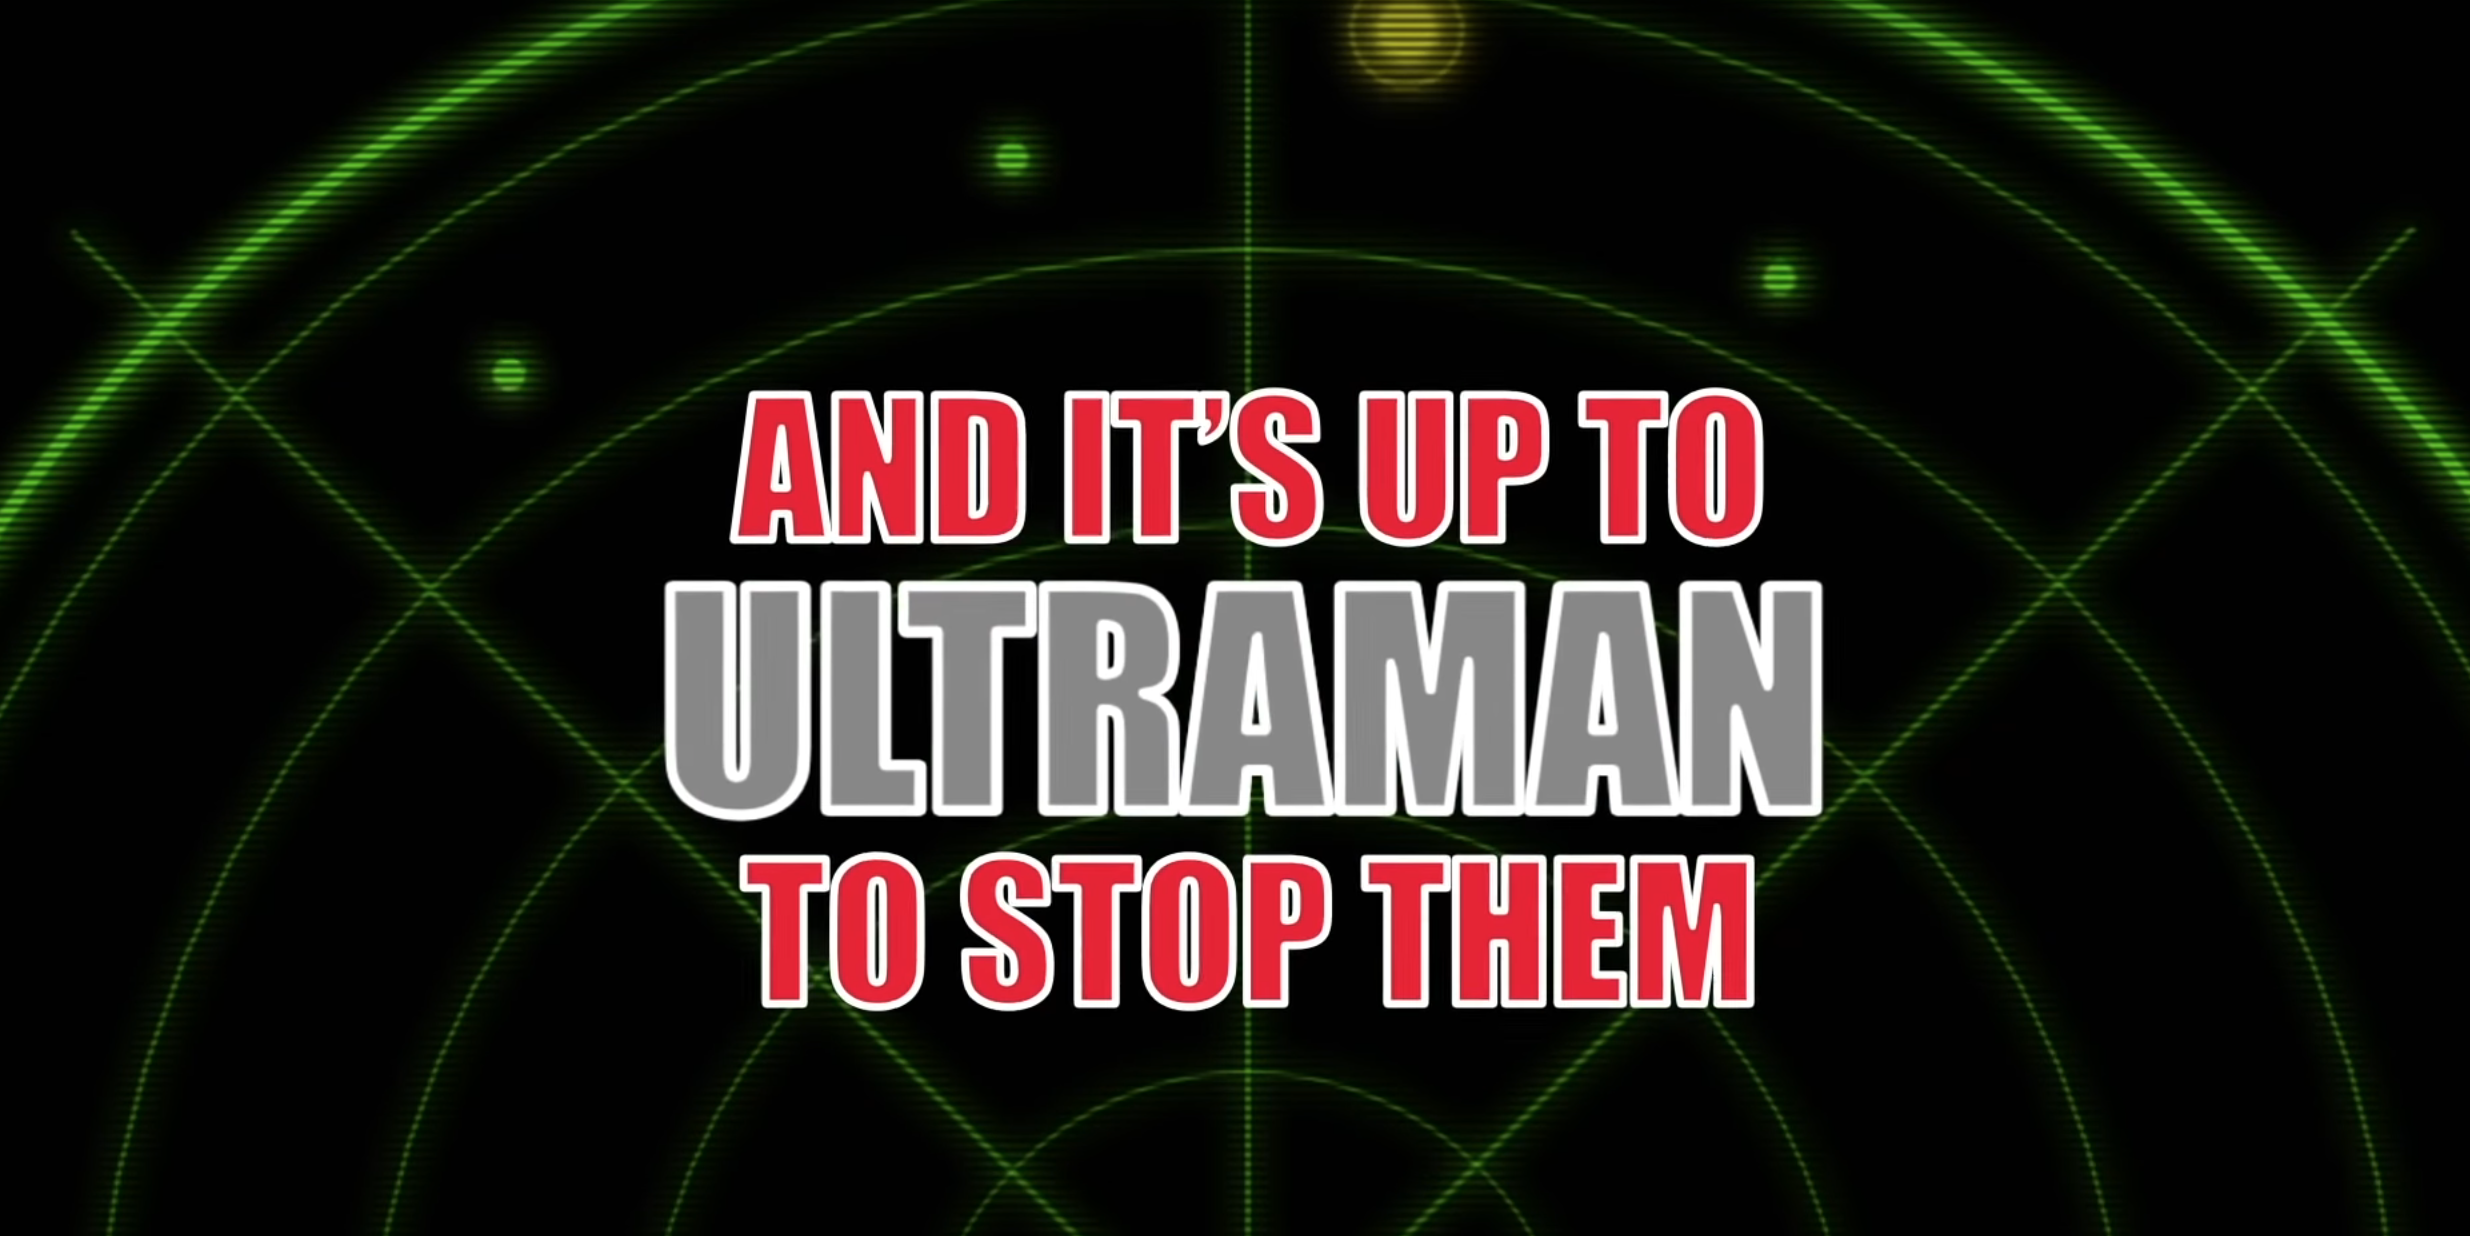 And it's up to Ultraman to stop them